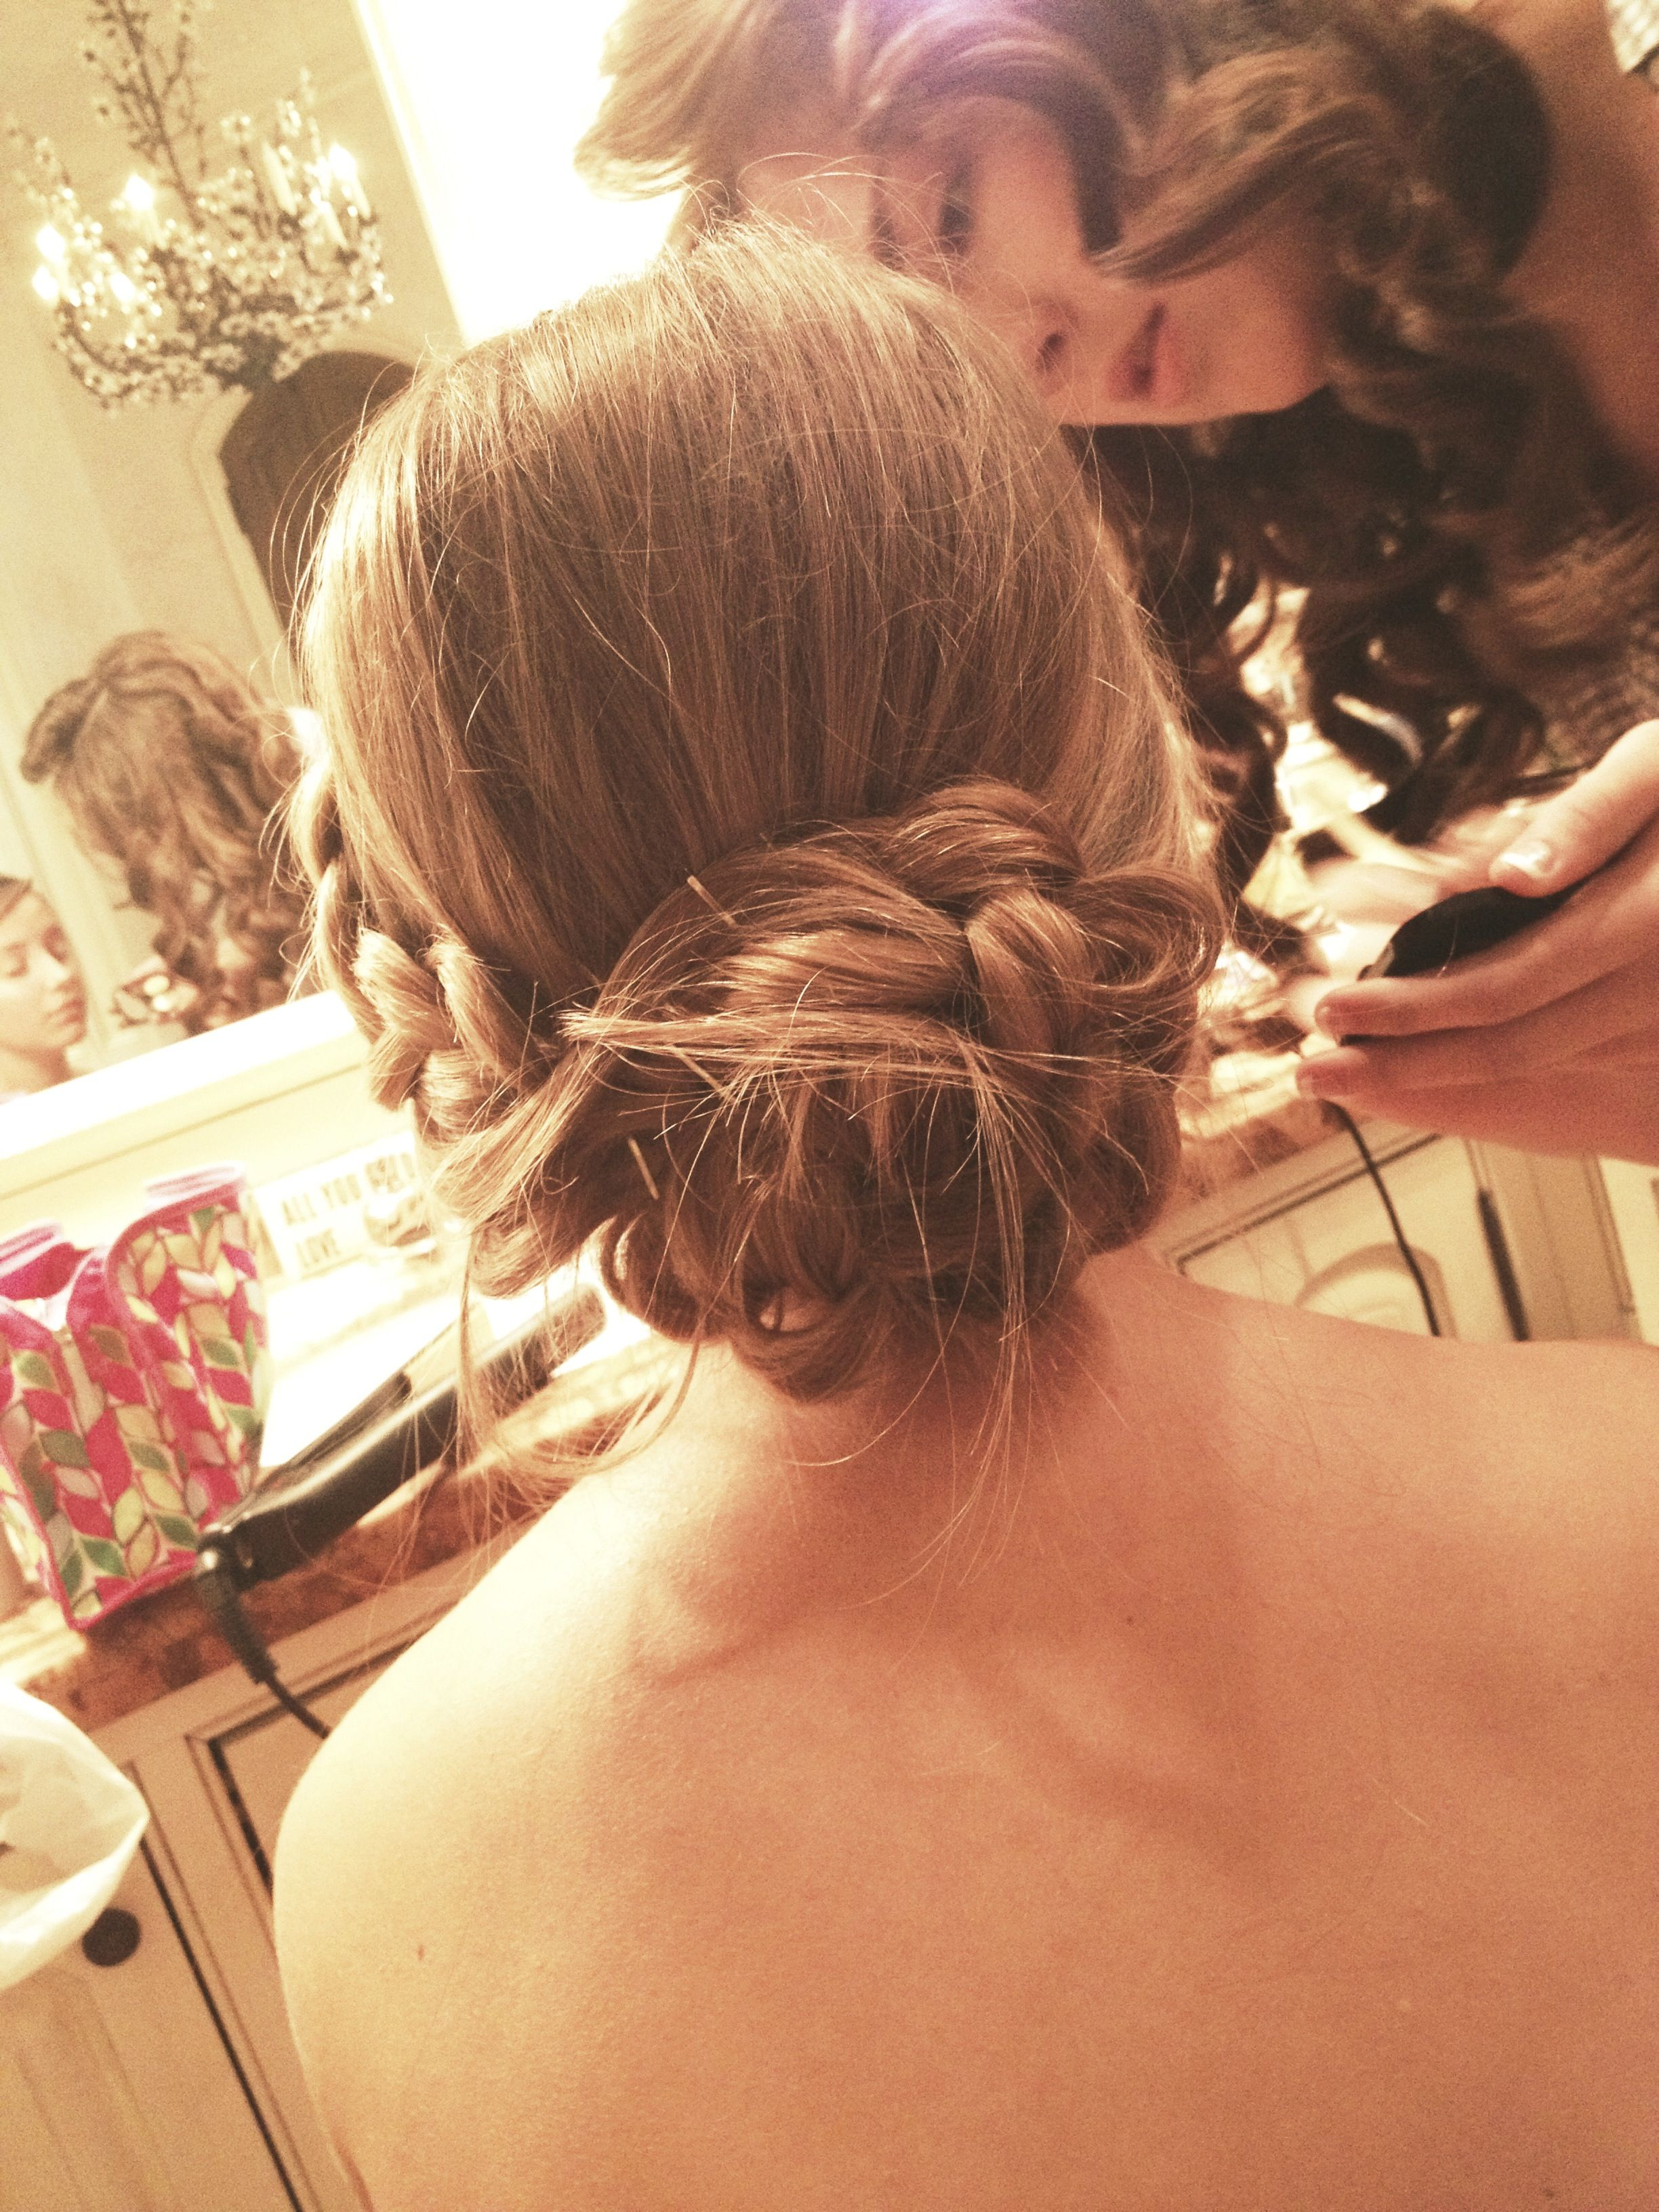 Blake Lively hairstyle Prom Pinterest